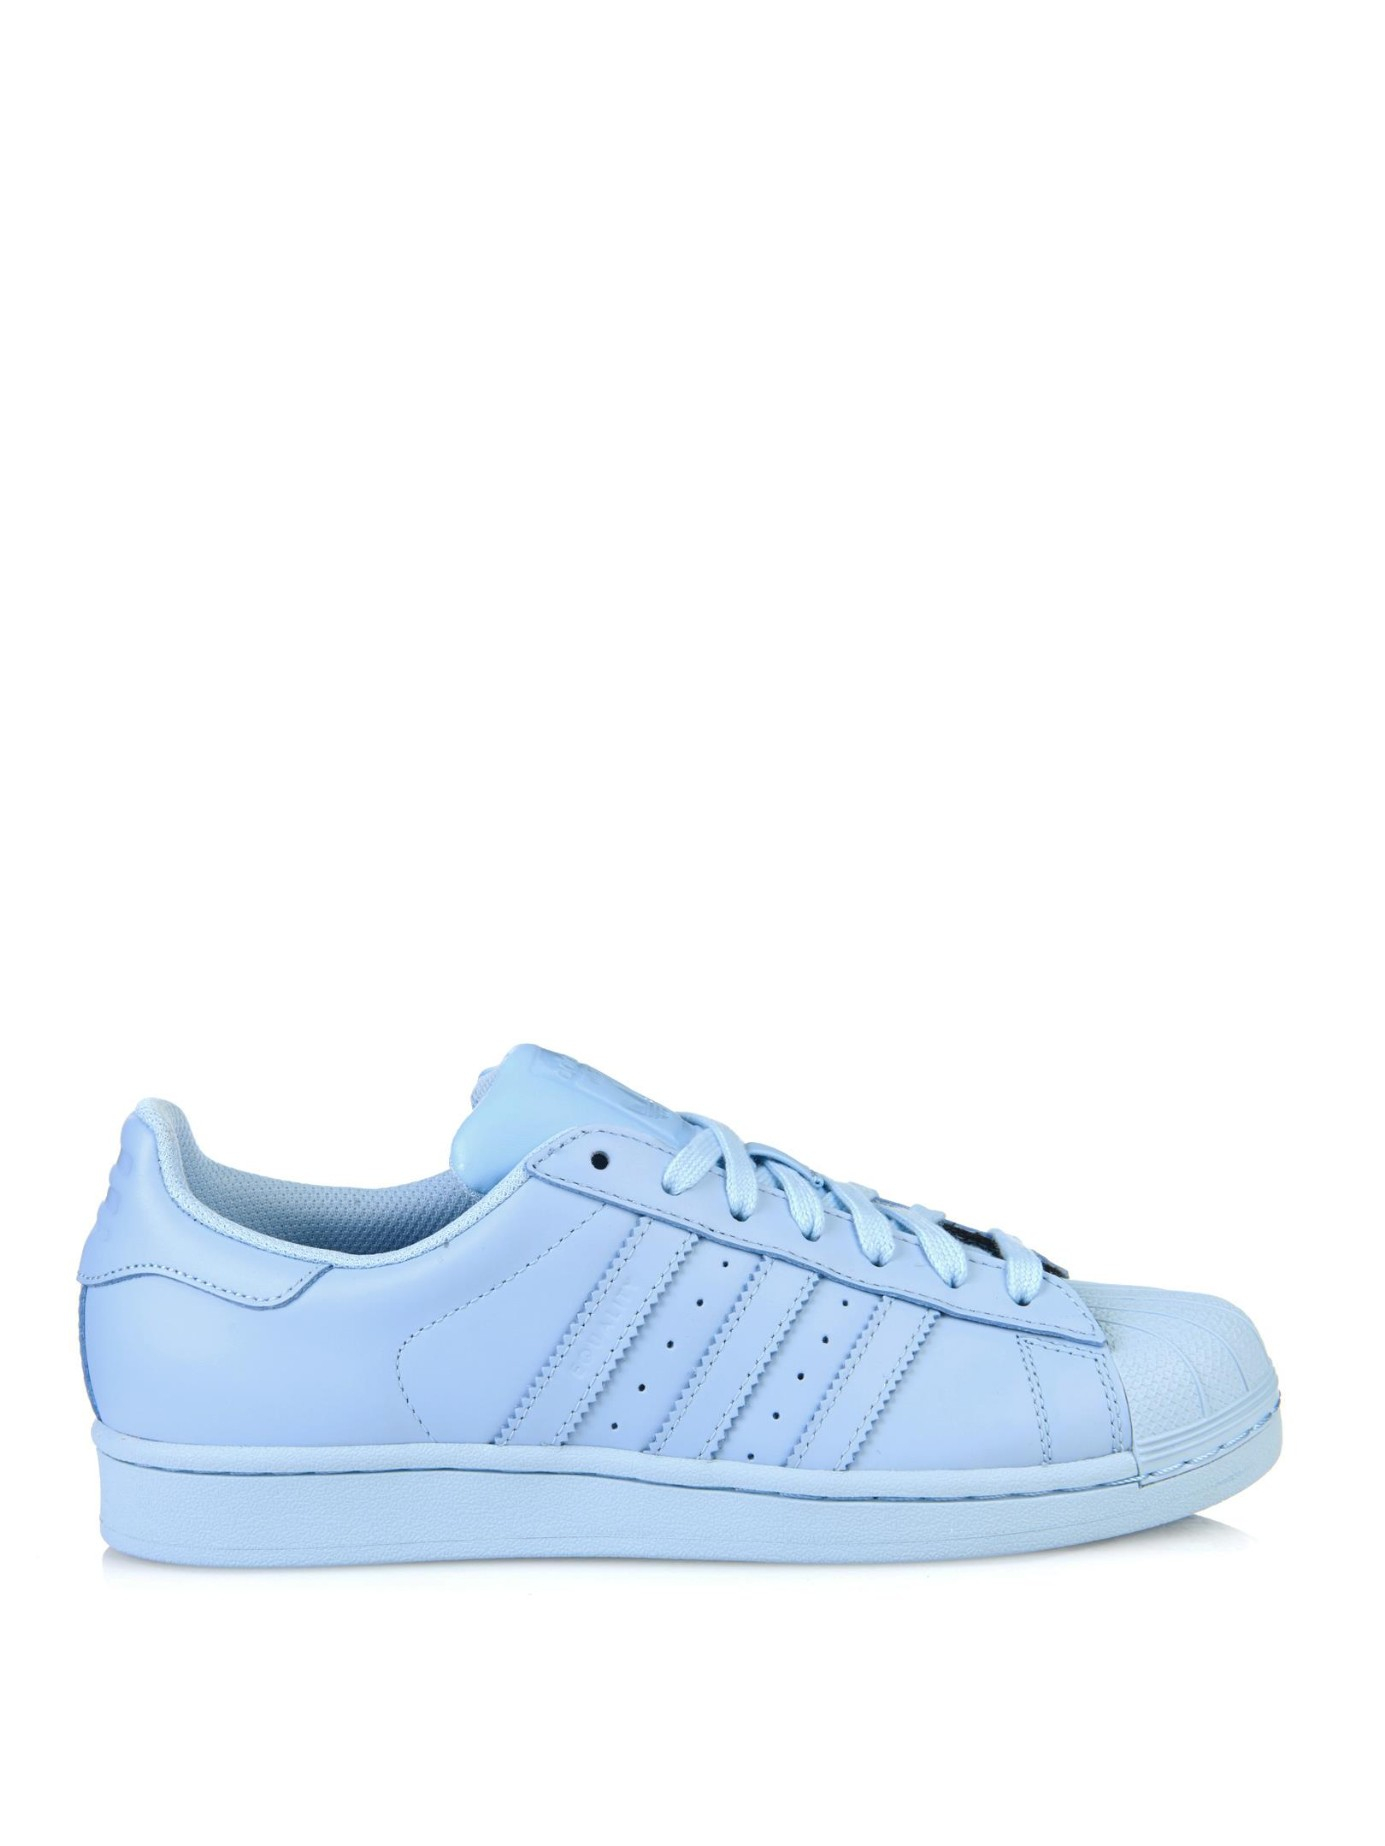 ... originals superstar leather g61070 aliexpress gallery. previously sold  at matchesfashion womens adidas superstar supercolor 9b0ec 0b204 ... c0b2f6acf